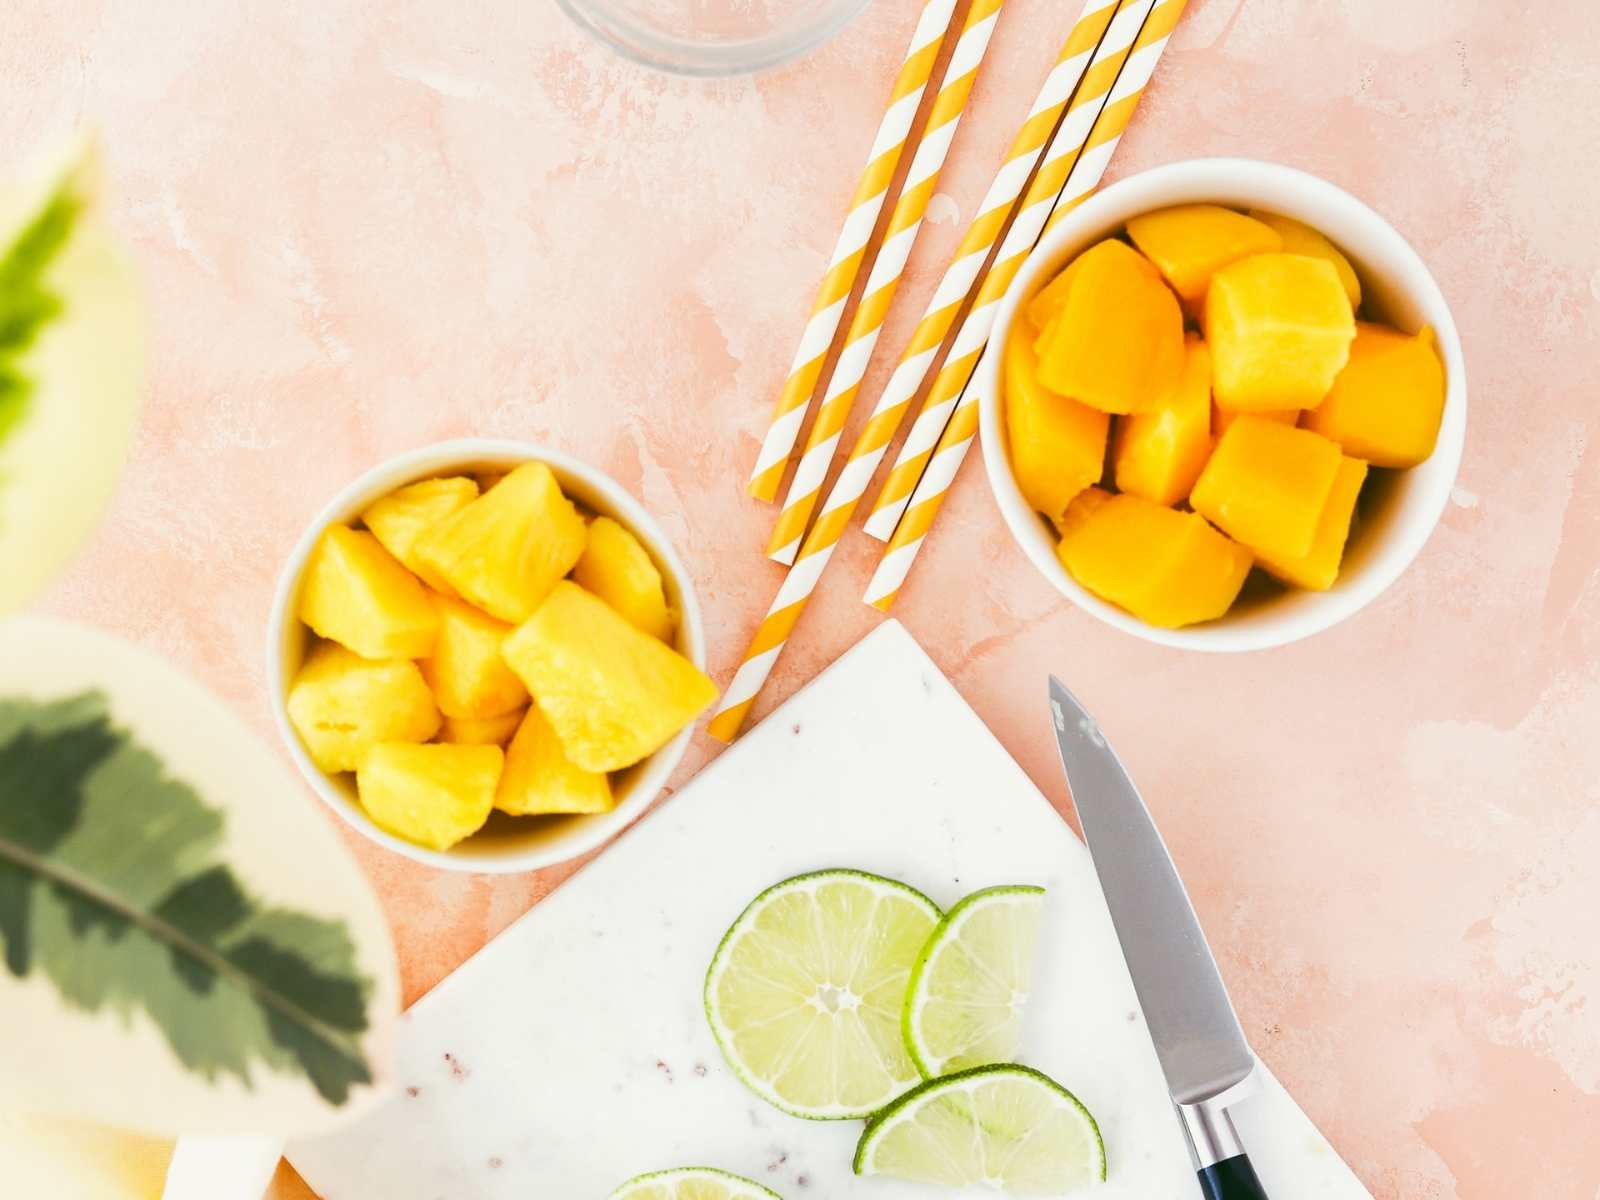 mango pieces and lime slices on a counter